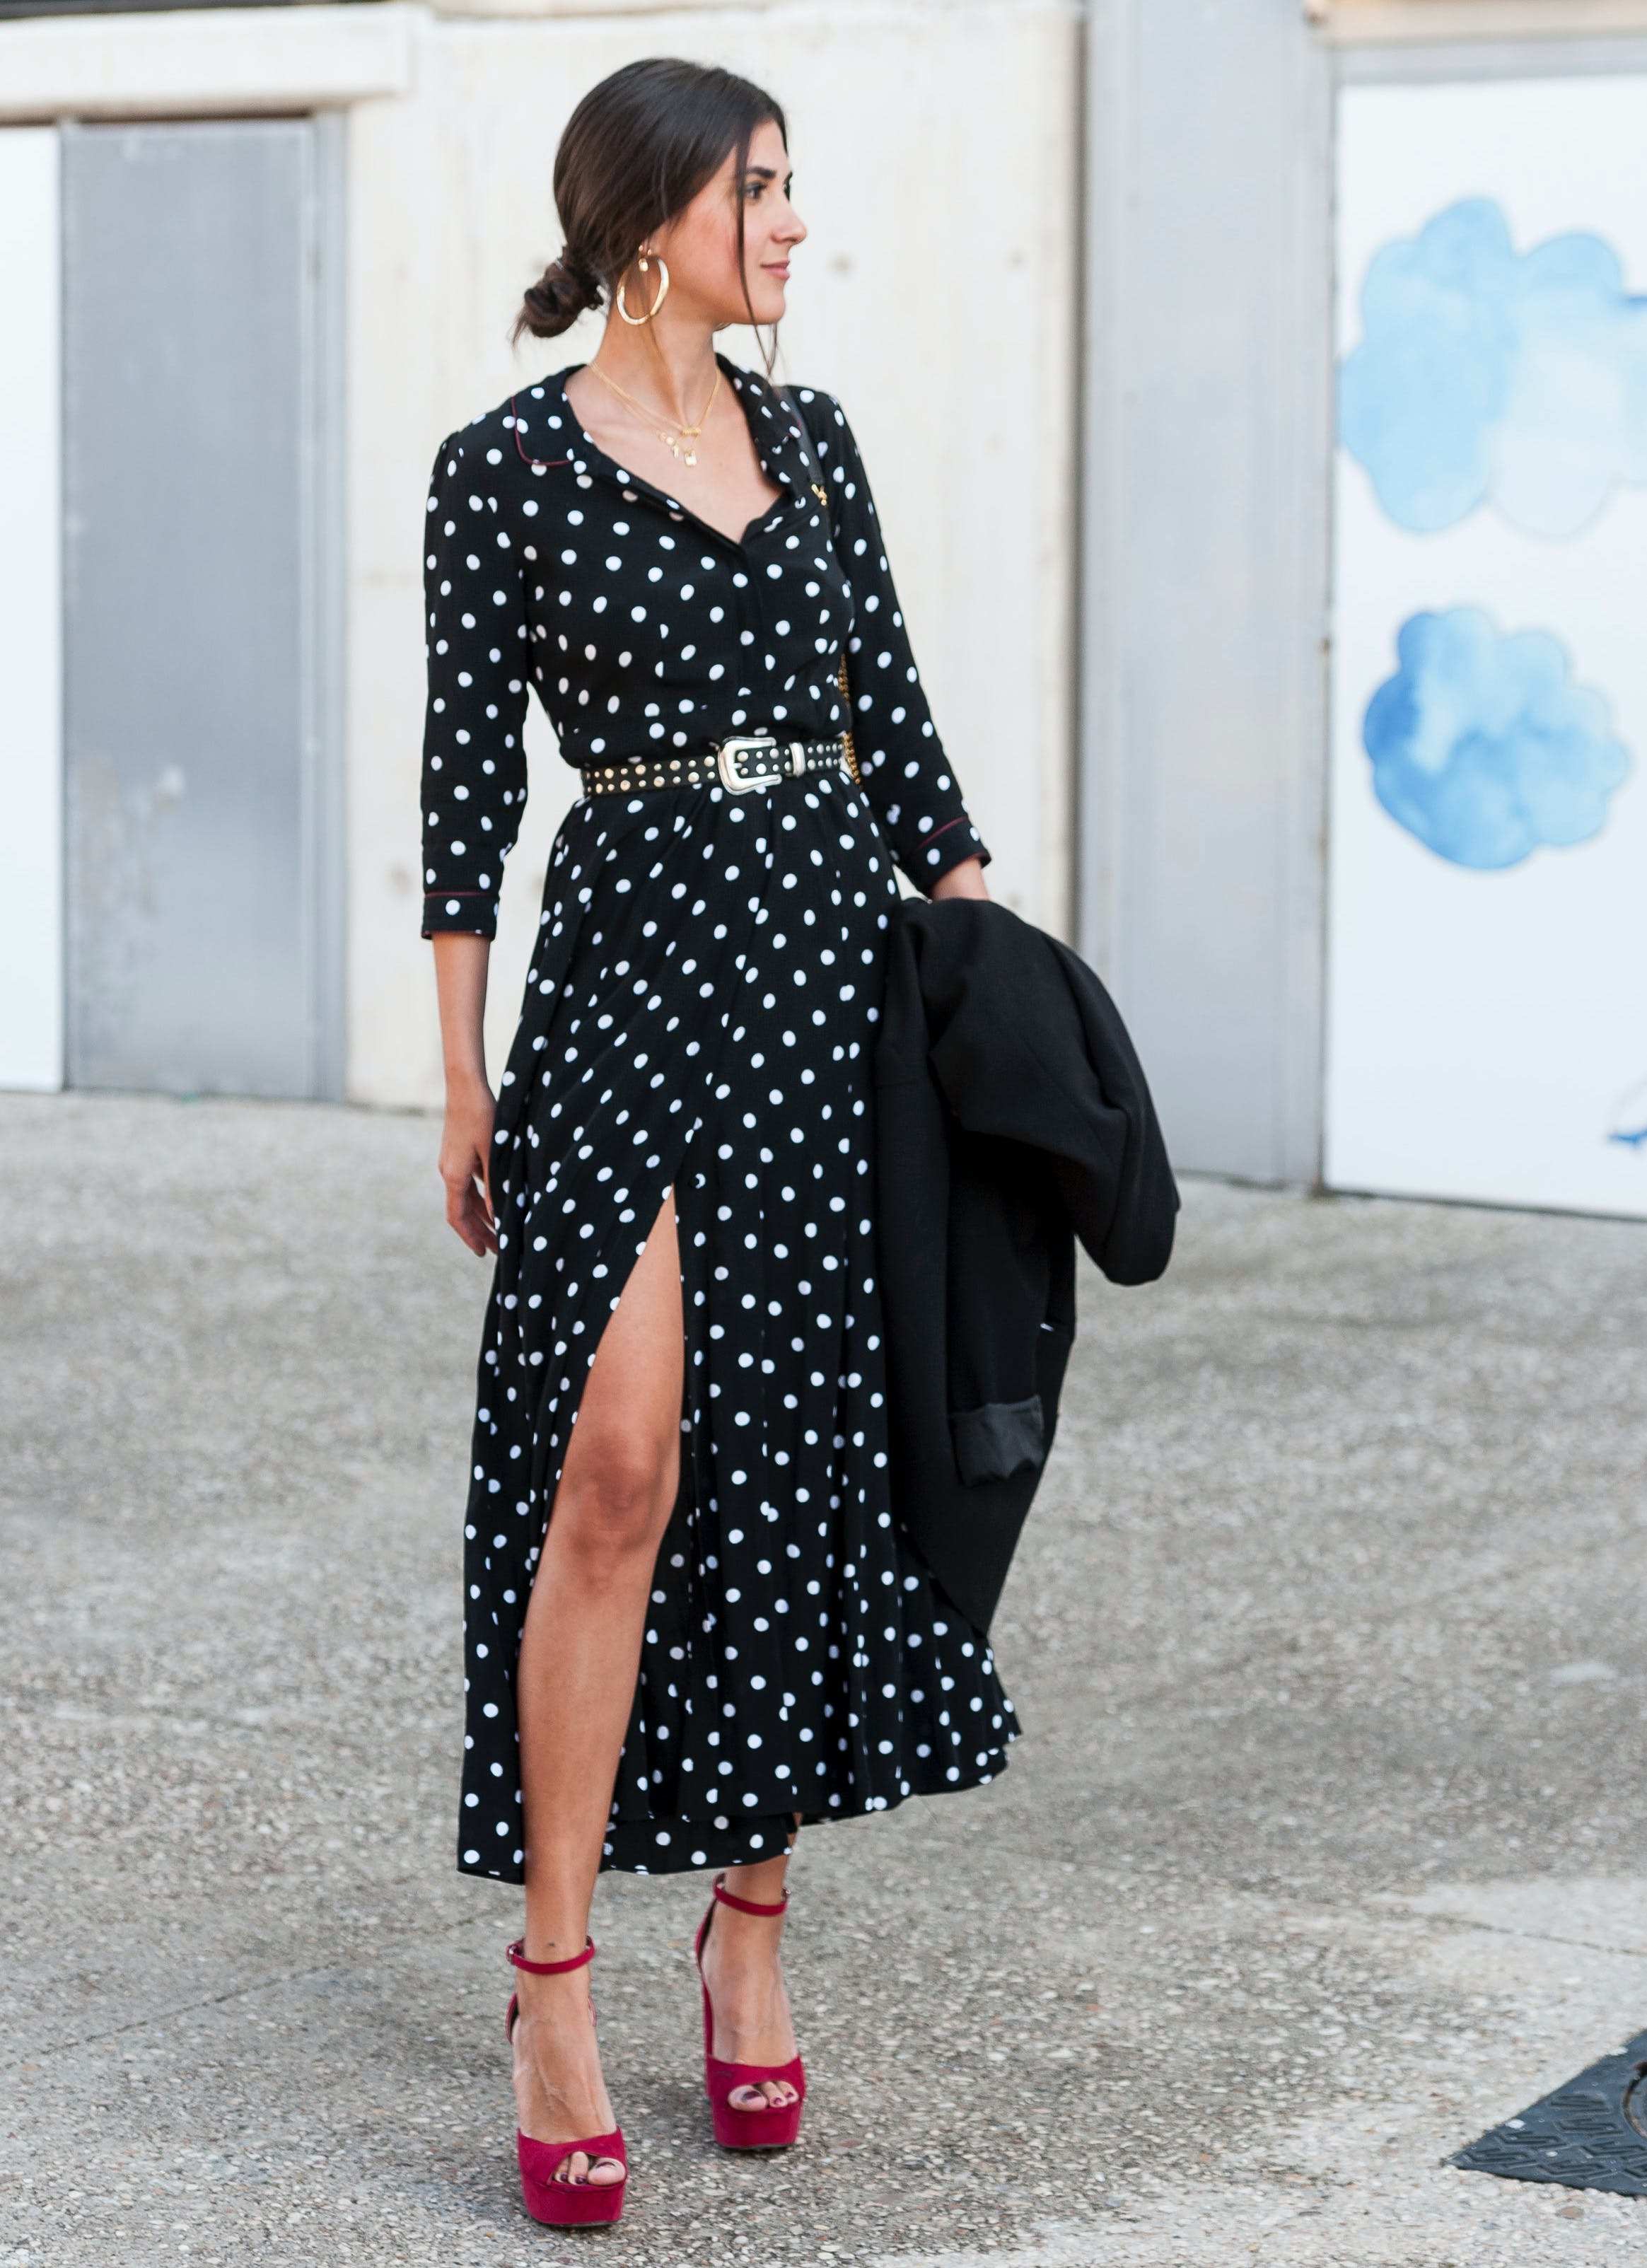 polka dots are trending for spring 2018